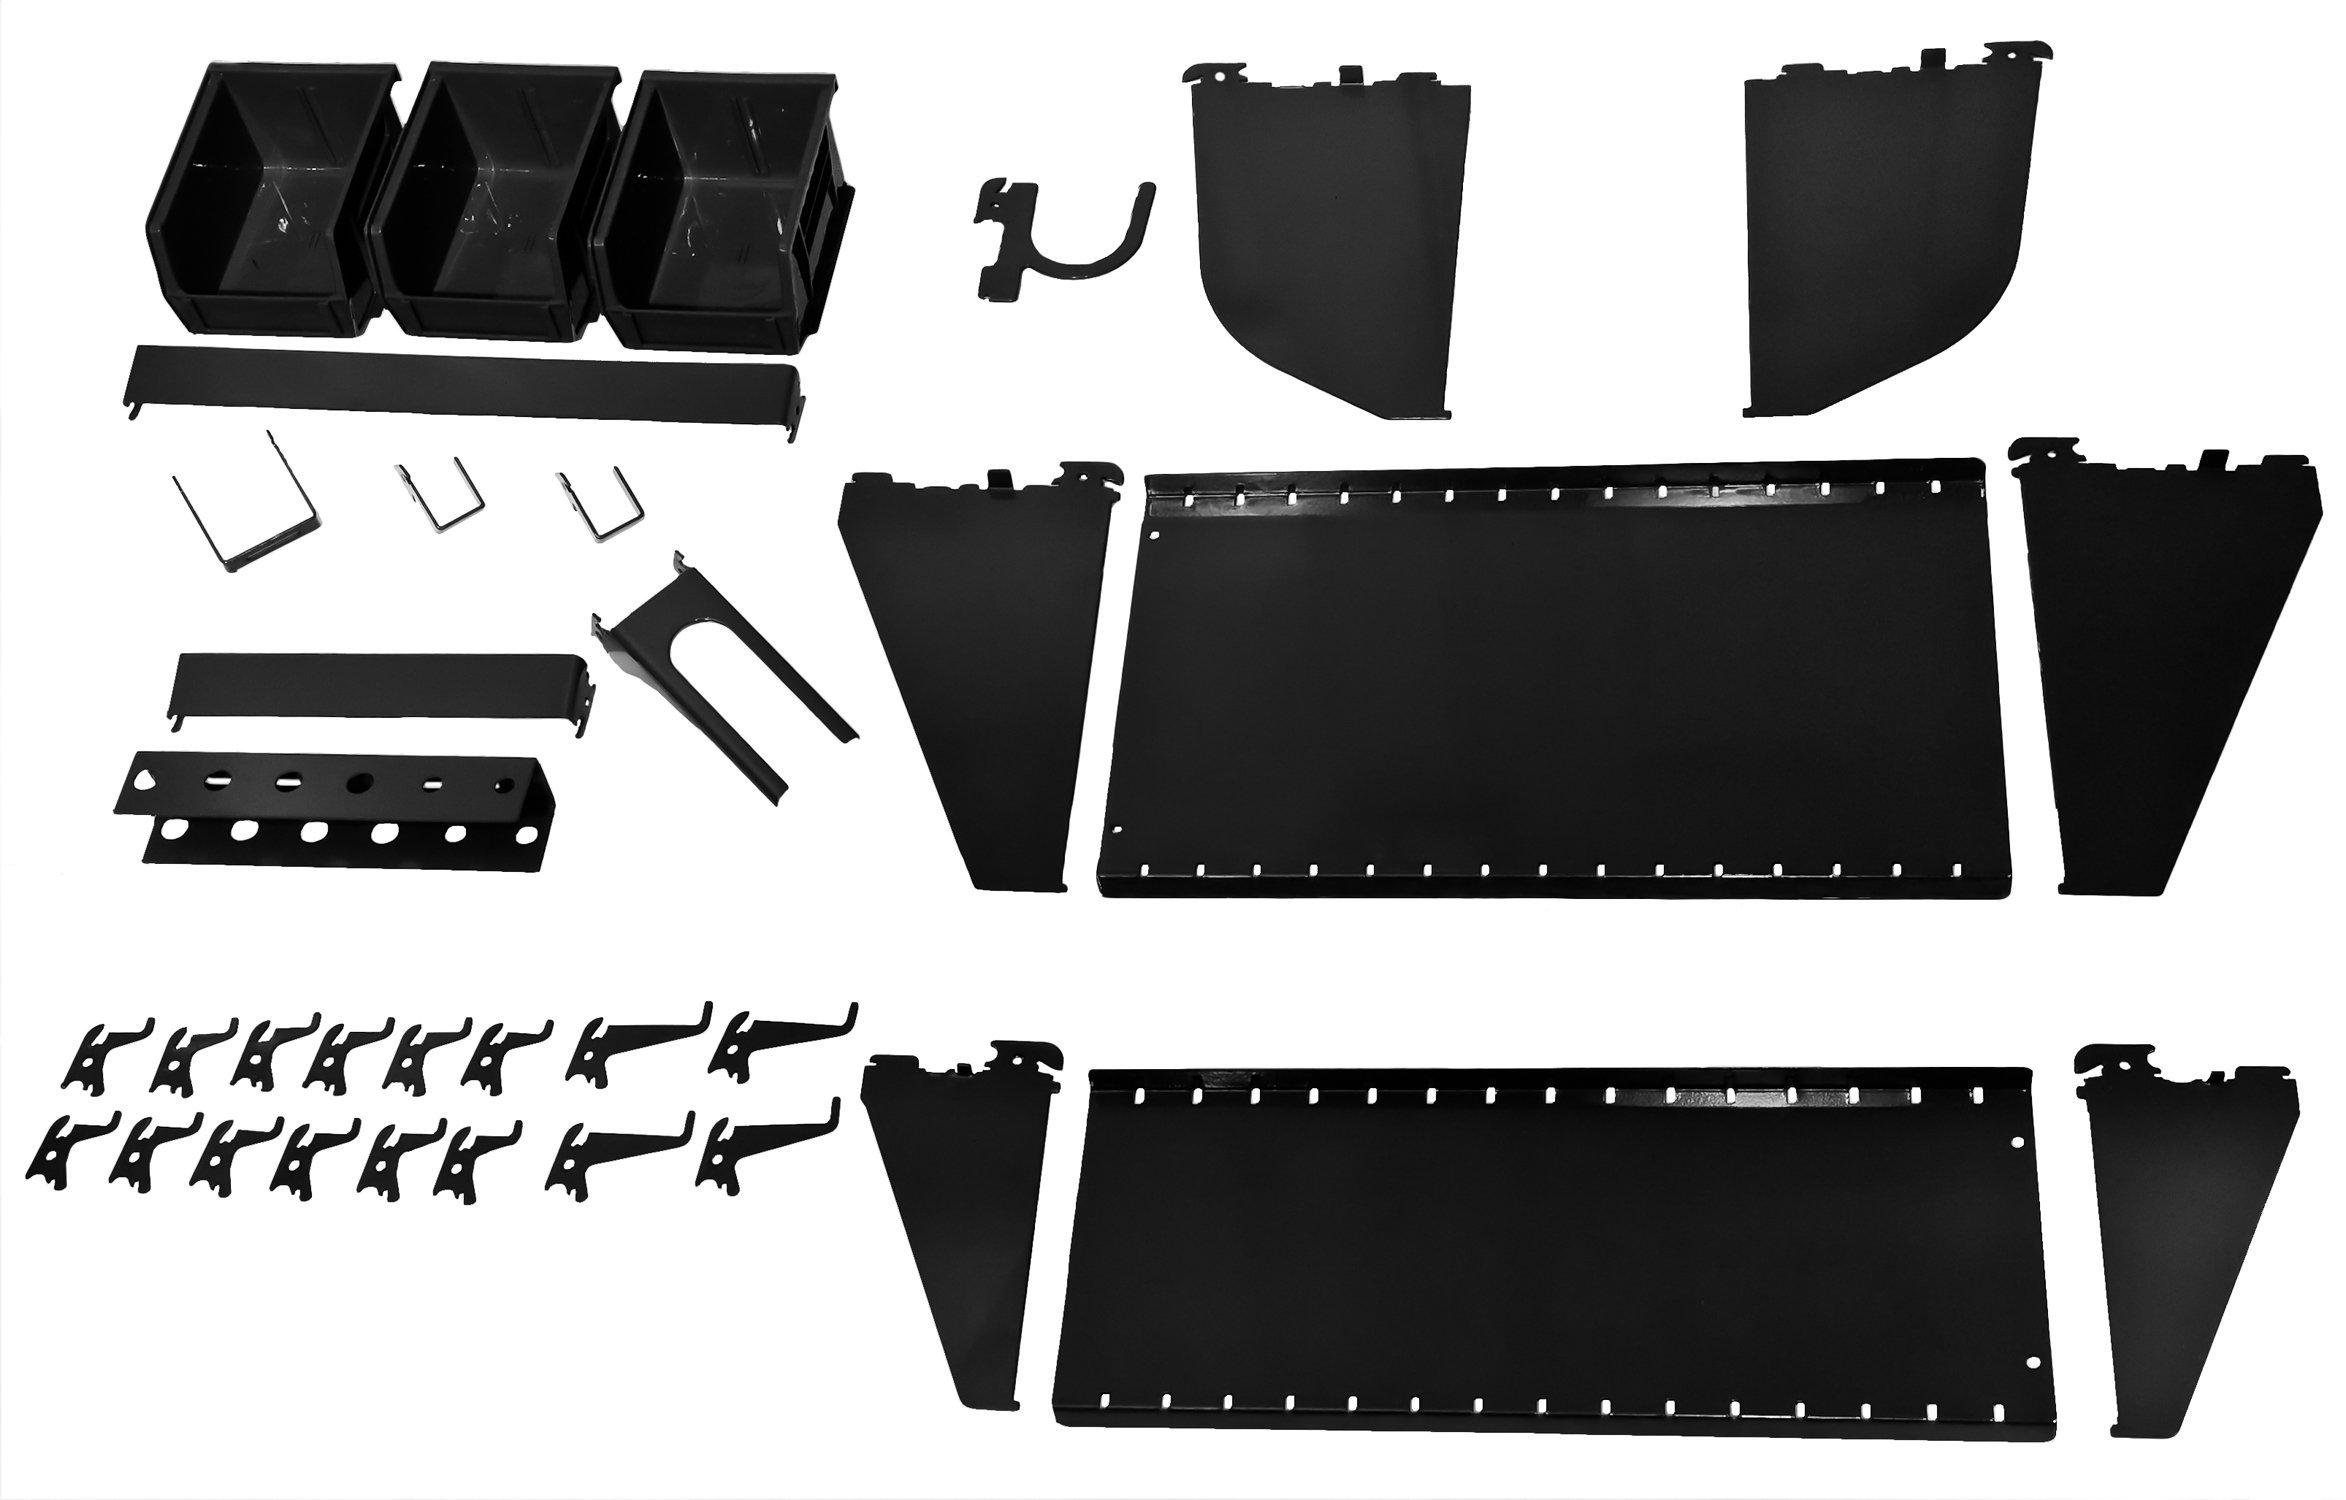 Wall Control KT-400-WRK B Slotted Tool Board Workstation Accessory Kit for Wall Control Pegboard Only, Black by Wall Control